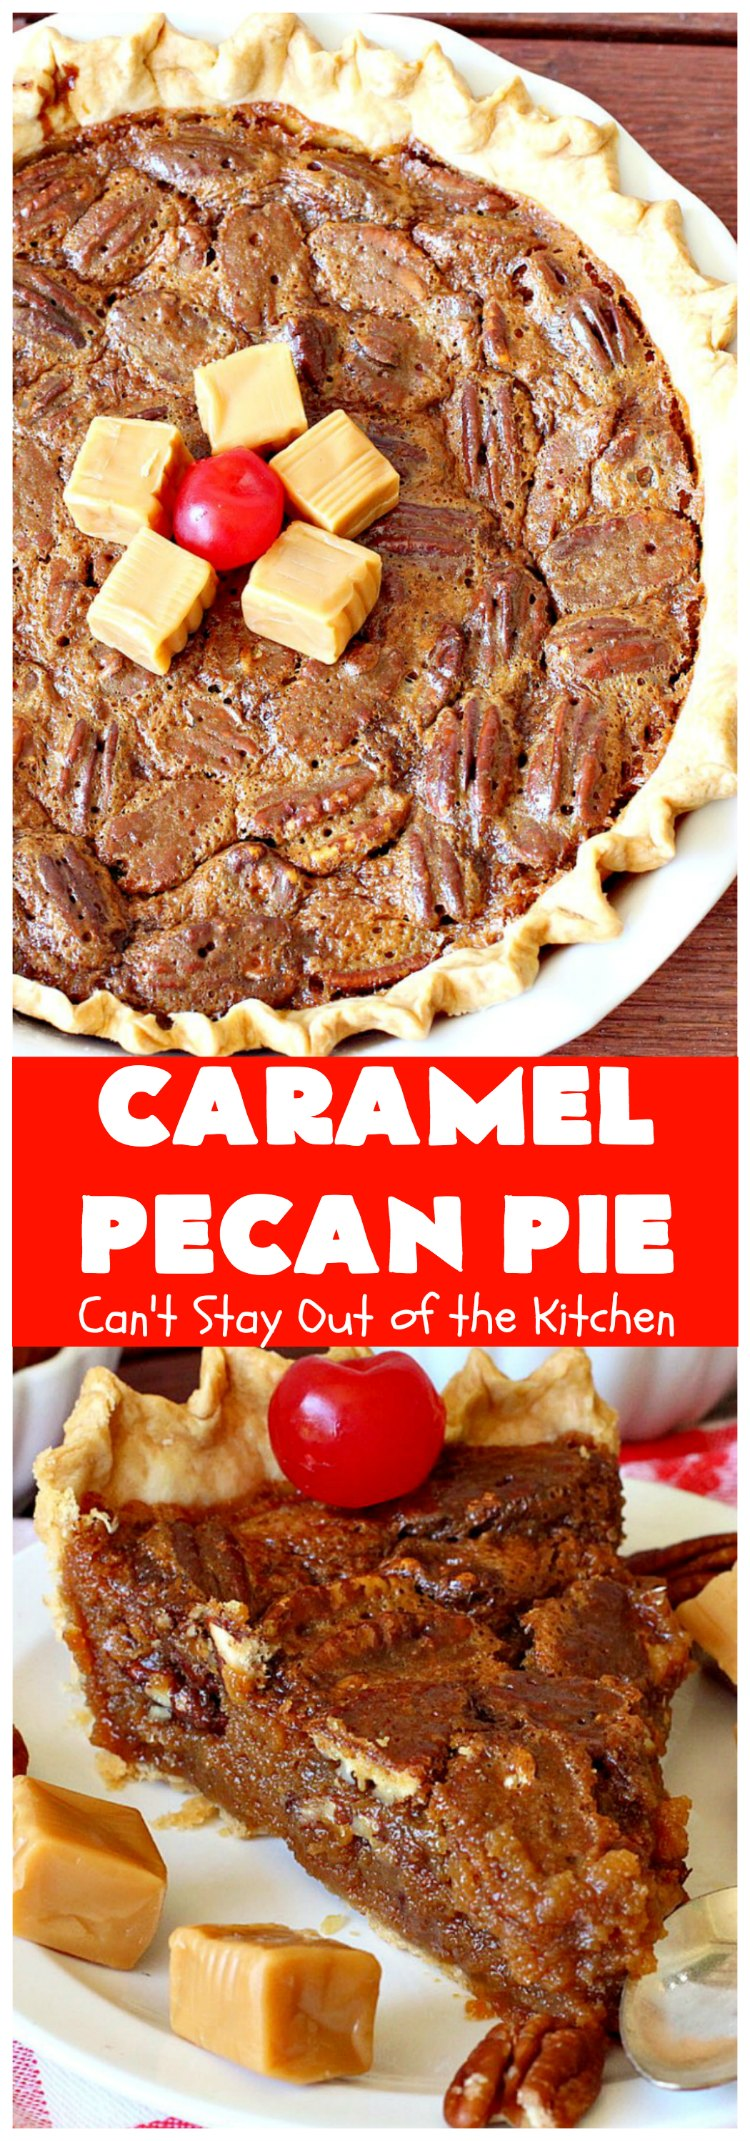 Caramel Pecan Pie | Can't Stay Out of the Kitchen